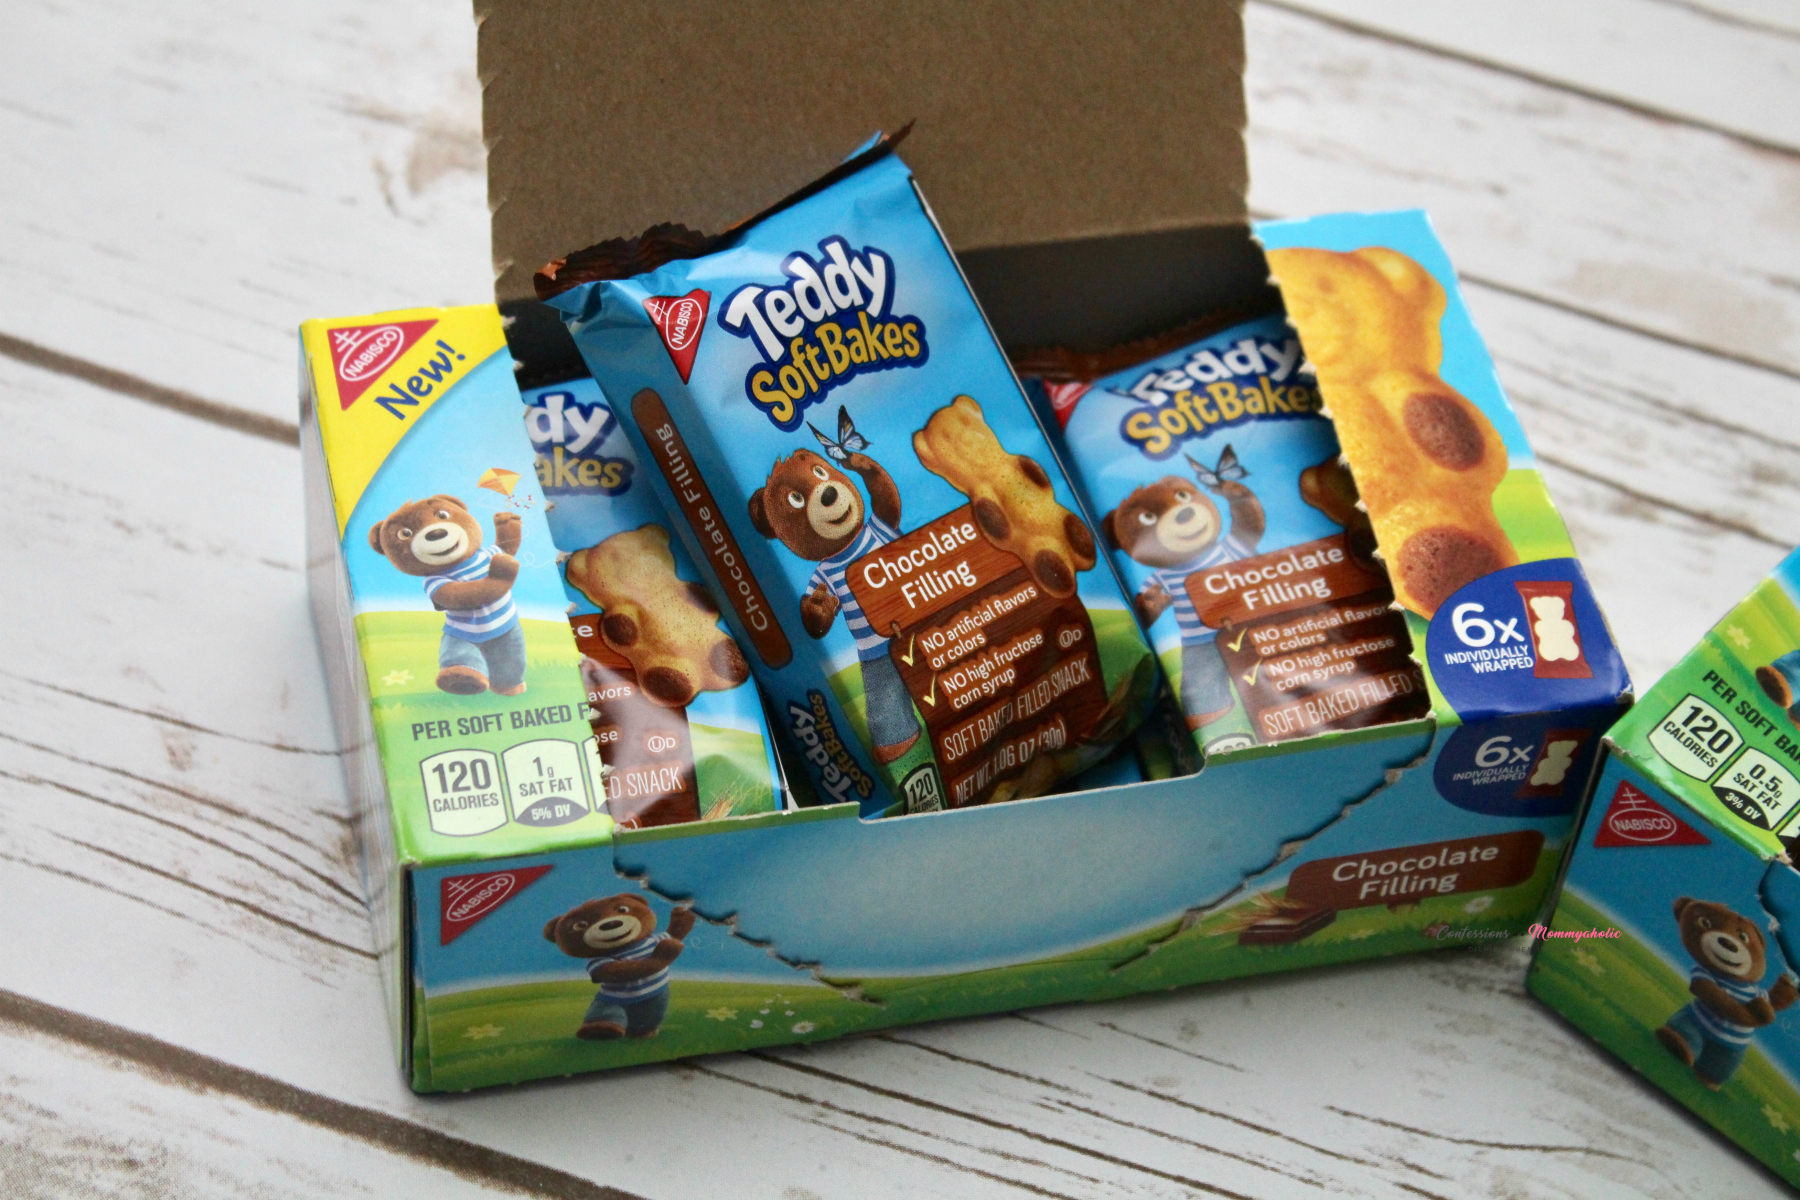 Opened Teddy Soft Bakes Box 2